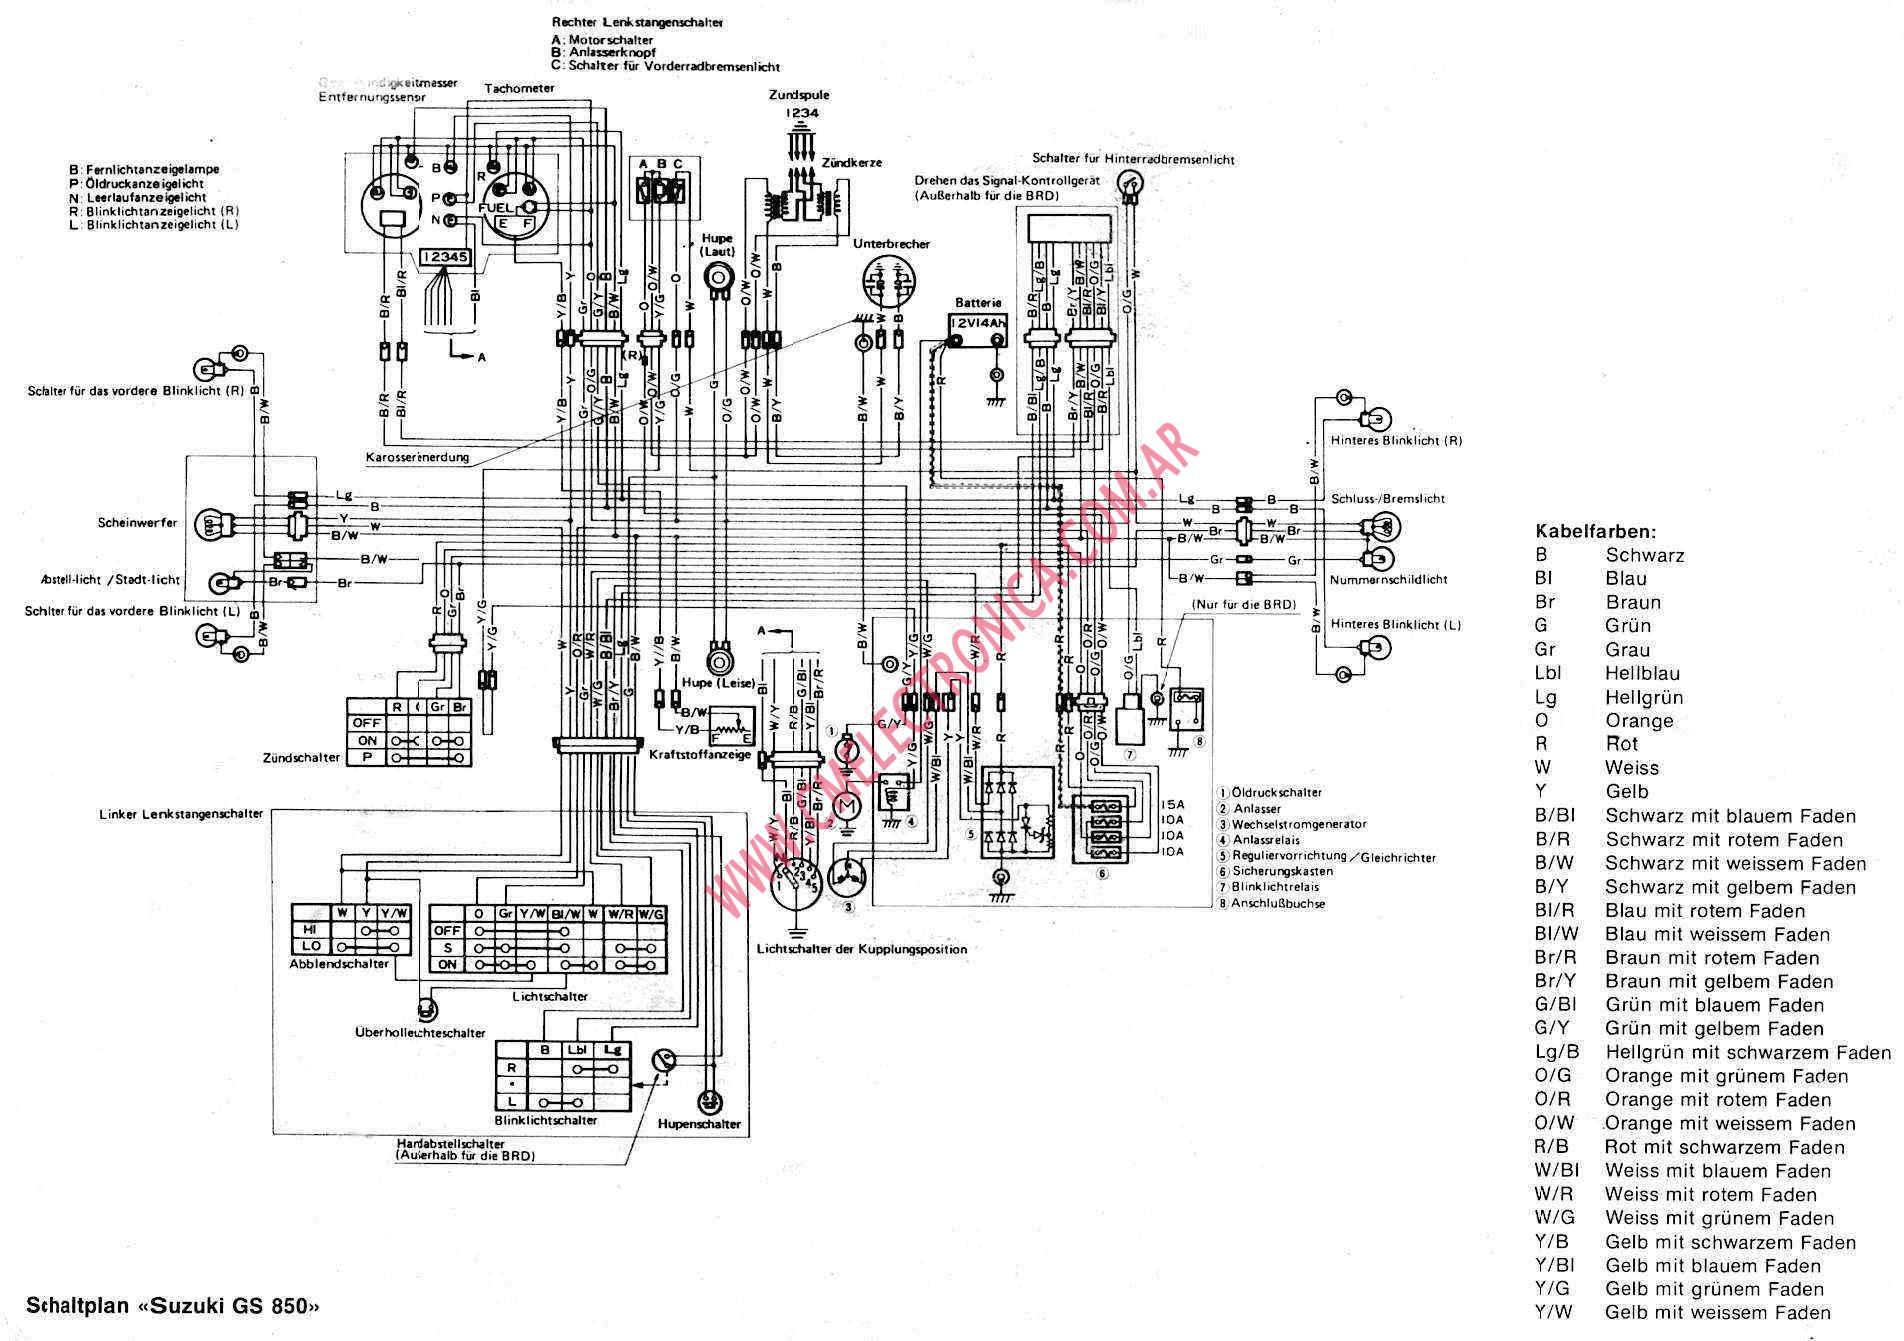 suzuki gs850 diagrama suzuki gs850 gs850g wiring diagram at n-0.co